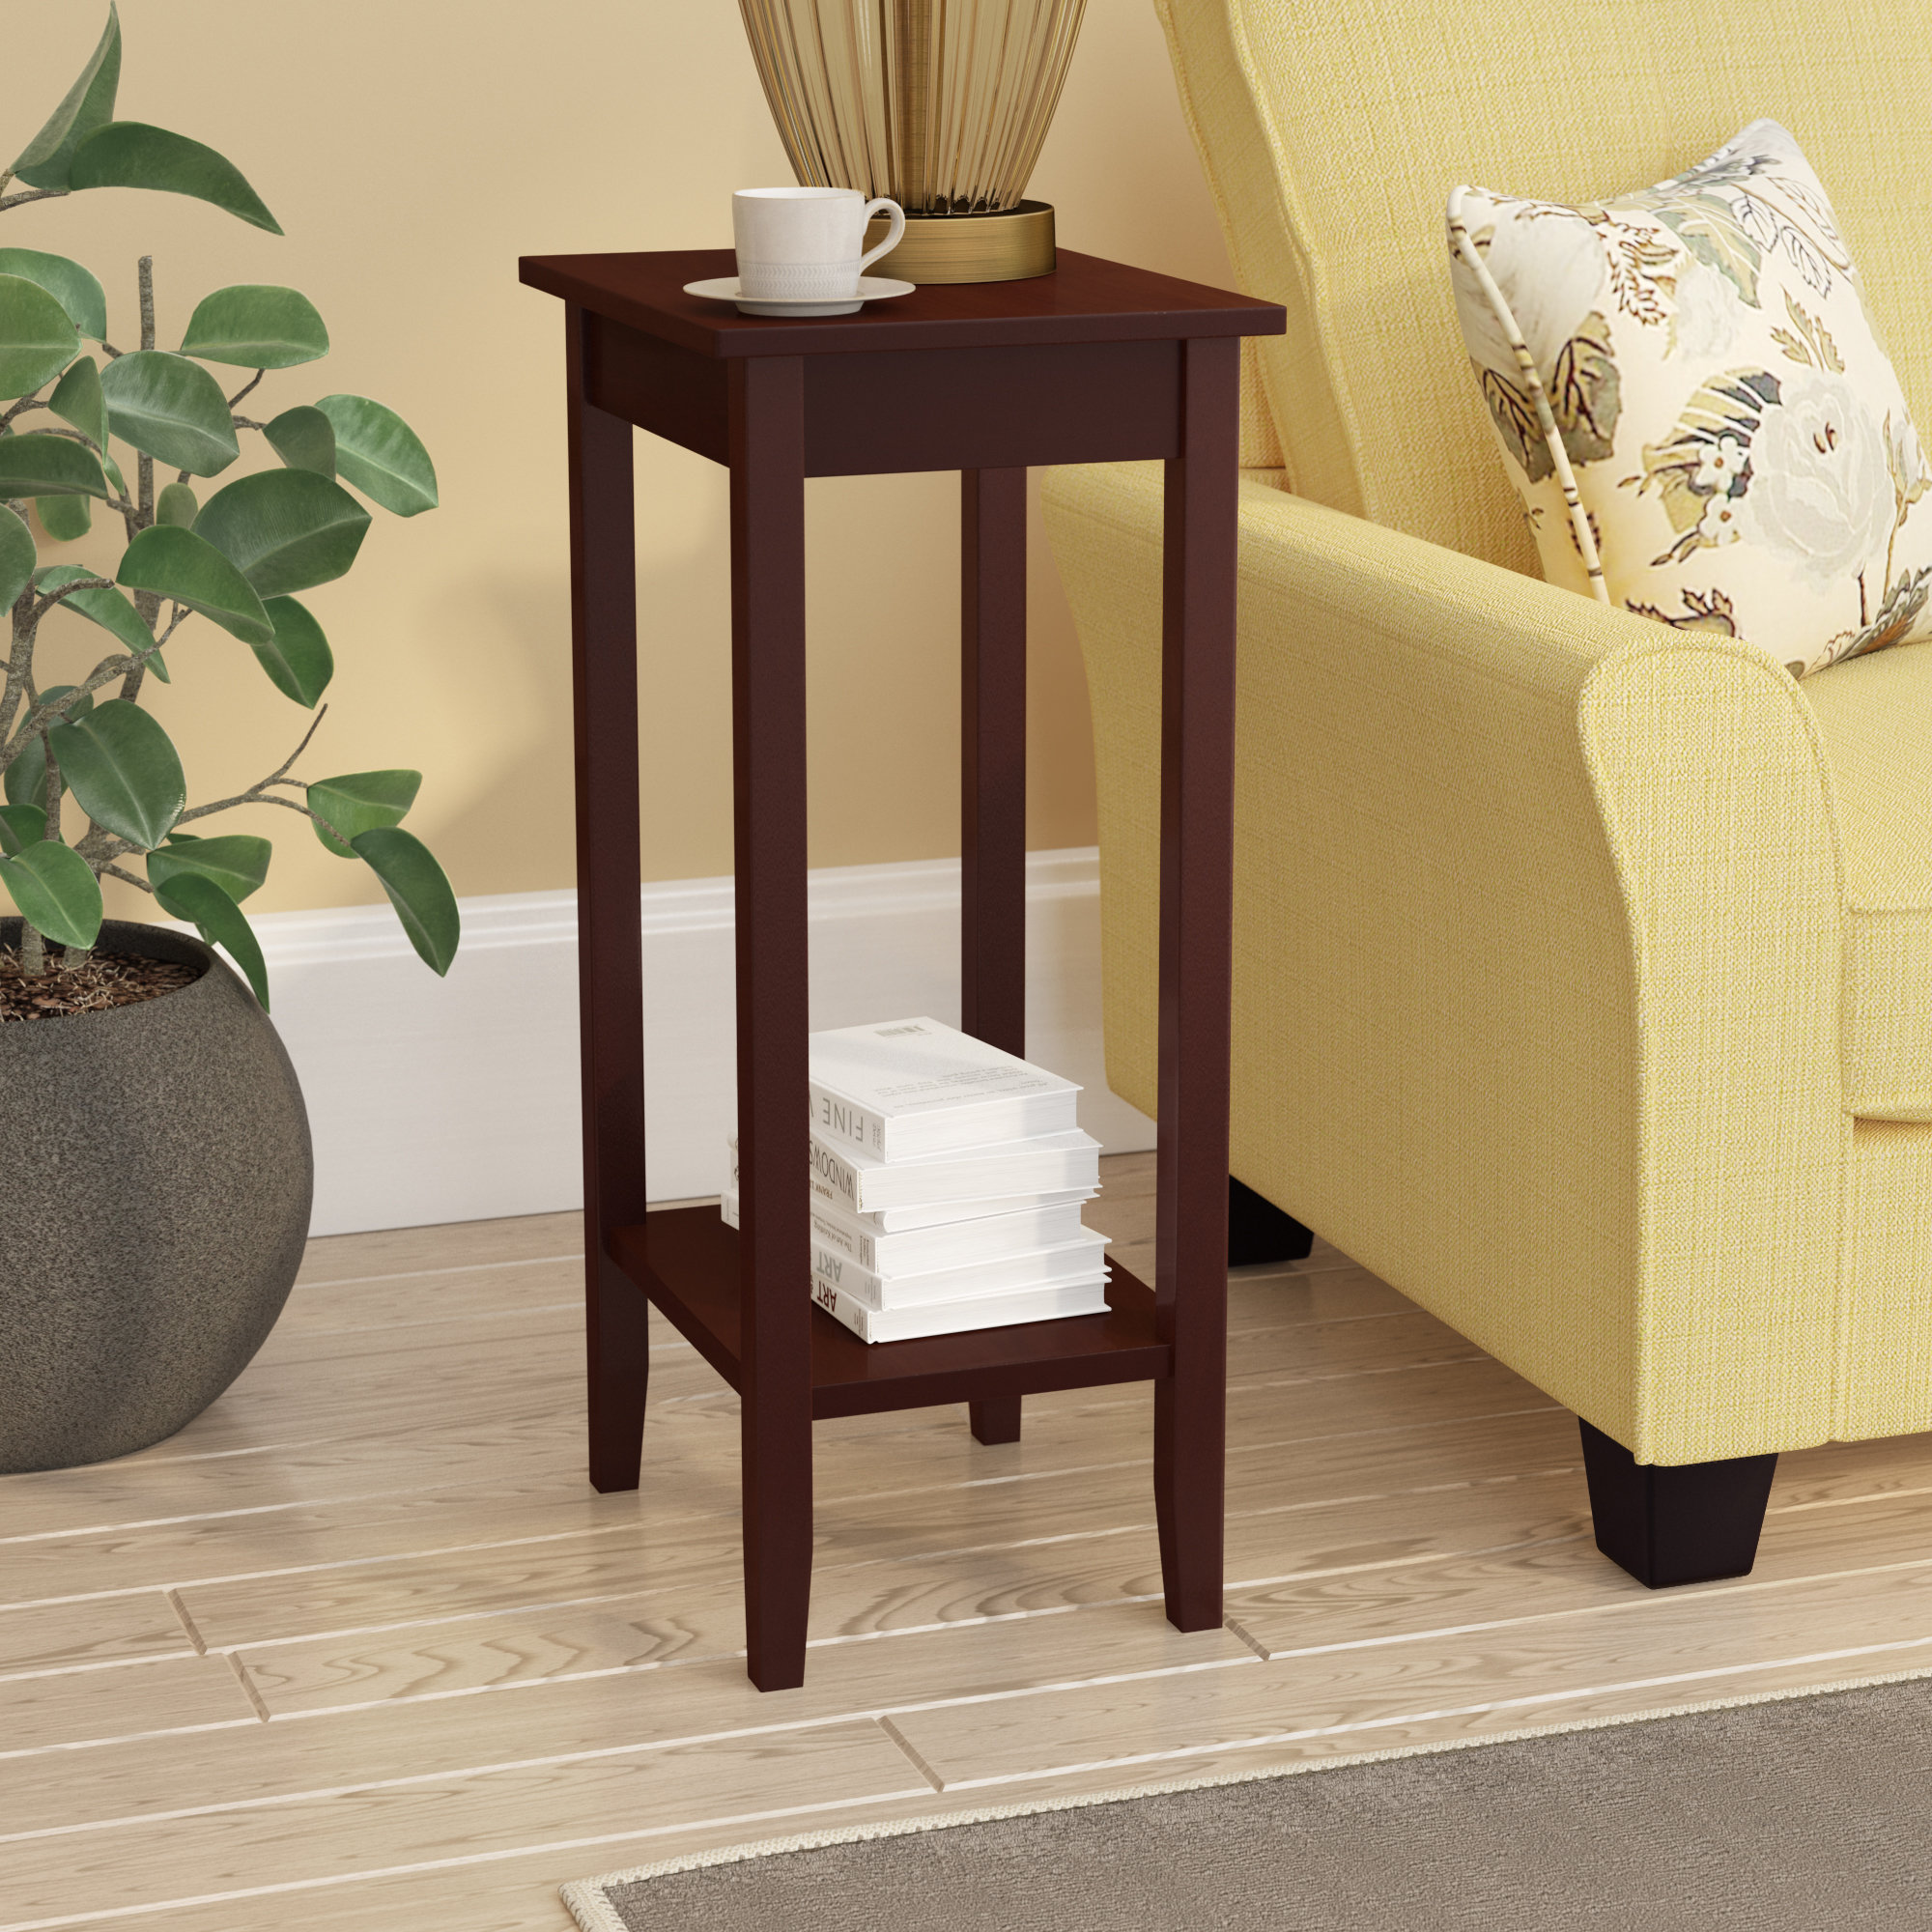 tall skinny accent table noble rosewood end extra quickview knobs and pulls small black occasional wood trestle base cordless lamps grey nest tables pallet coffee tyson furniture